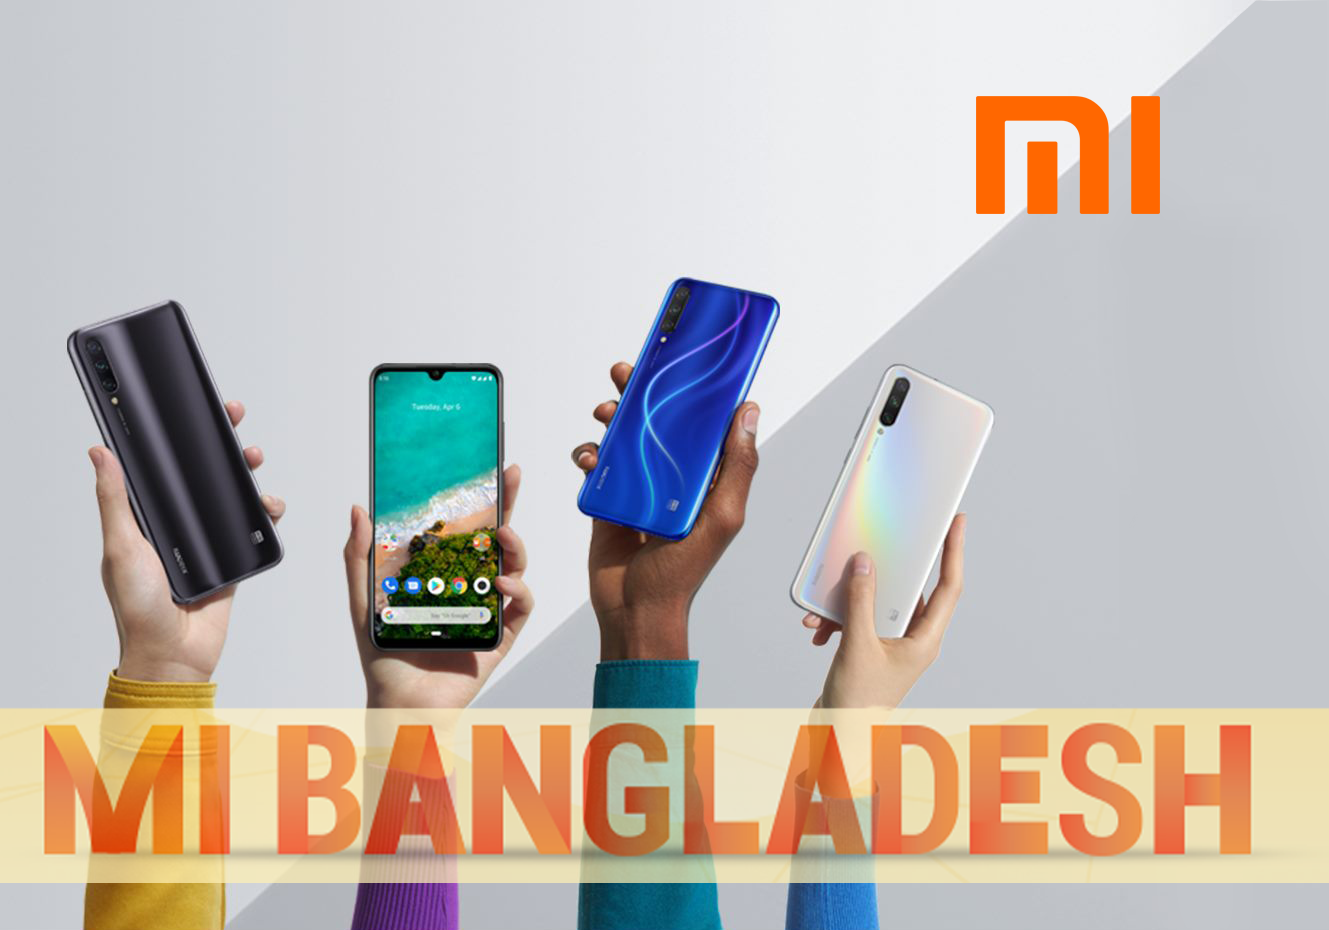 Xiaomi Bangladesh | How Xiaomi Found its Way into the List of Favorite Mobile Brands